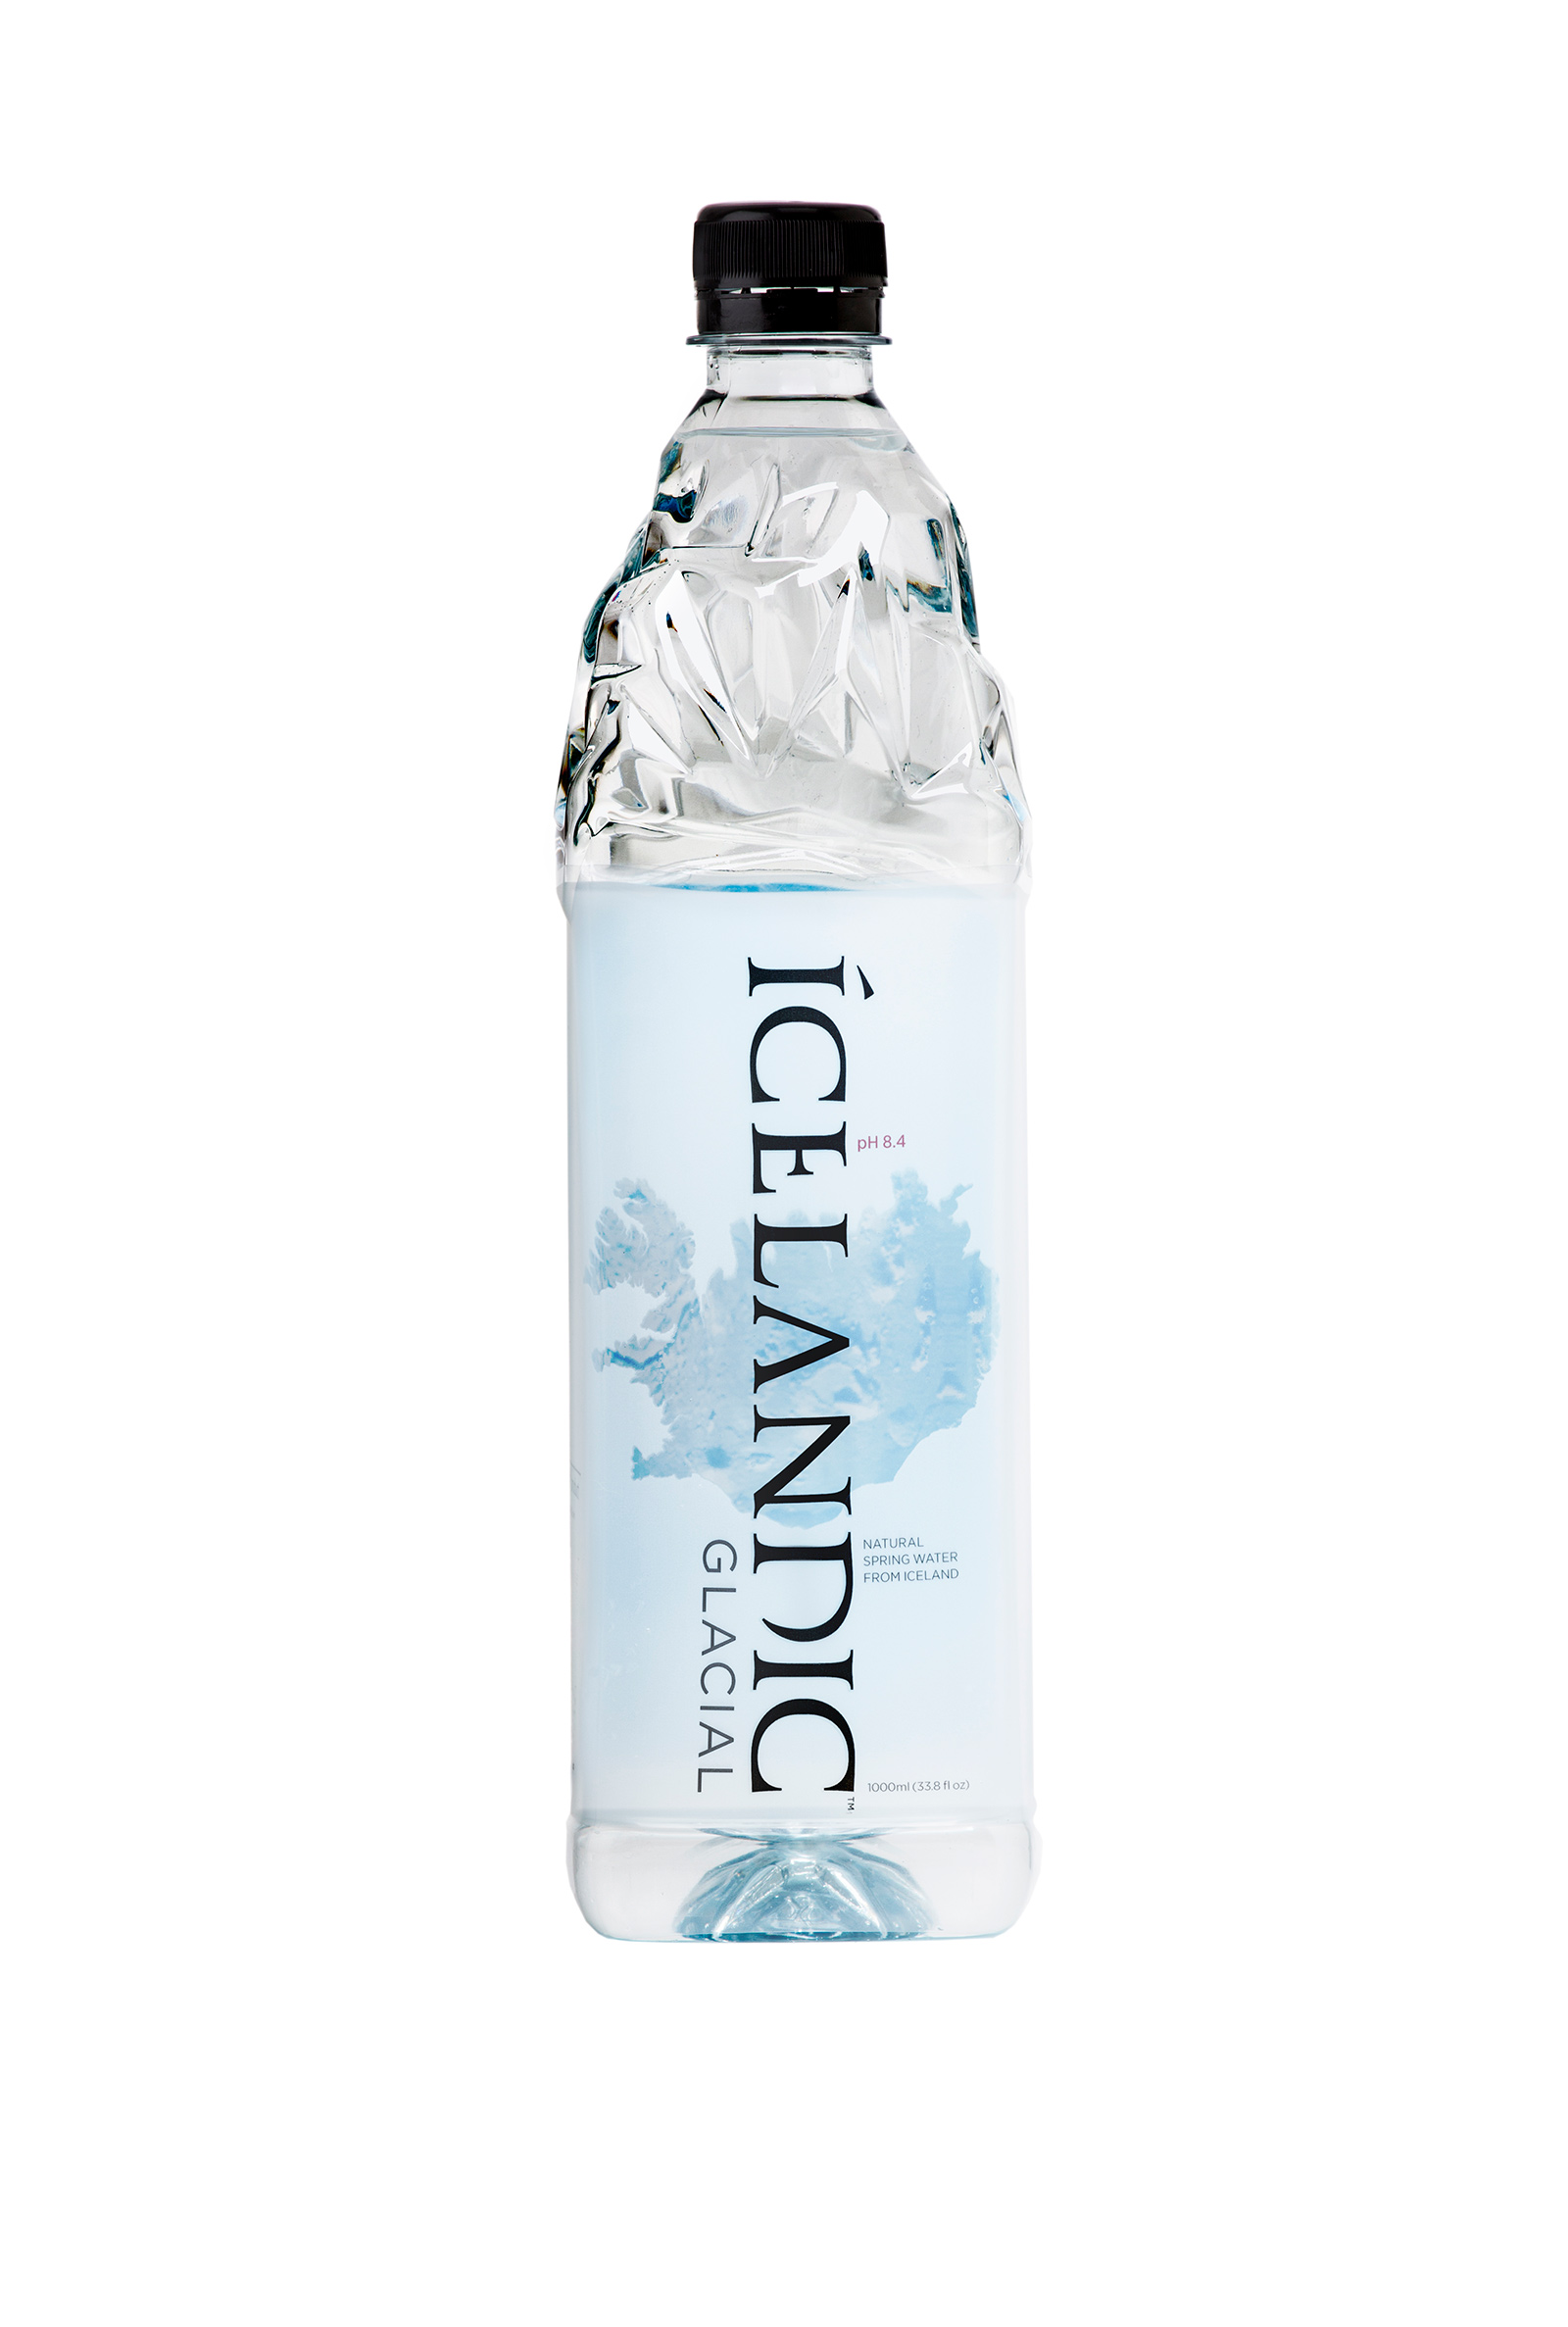 Icelandic Glacial Finewaters